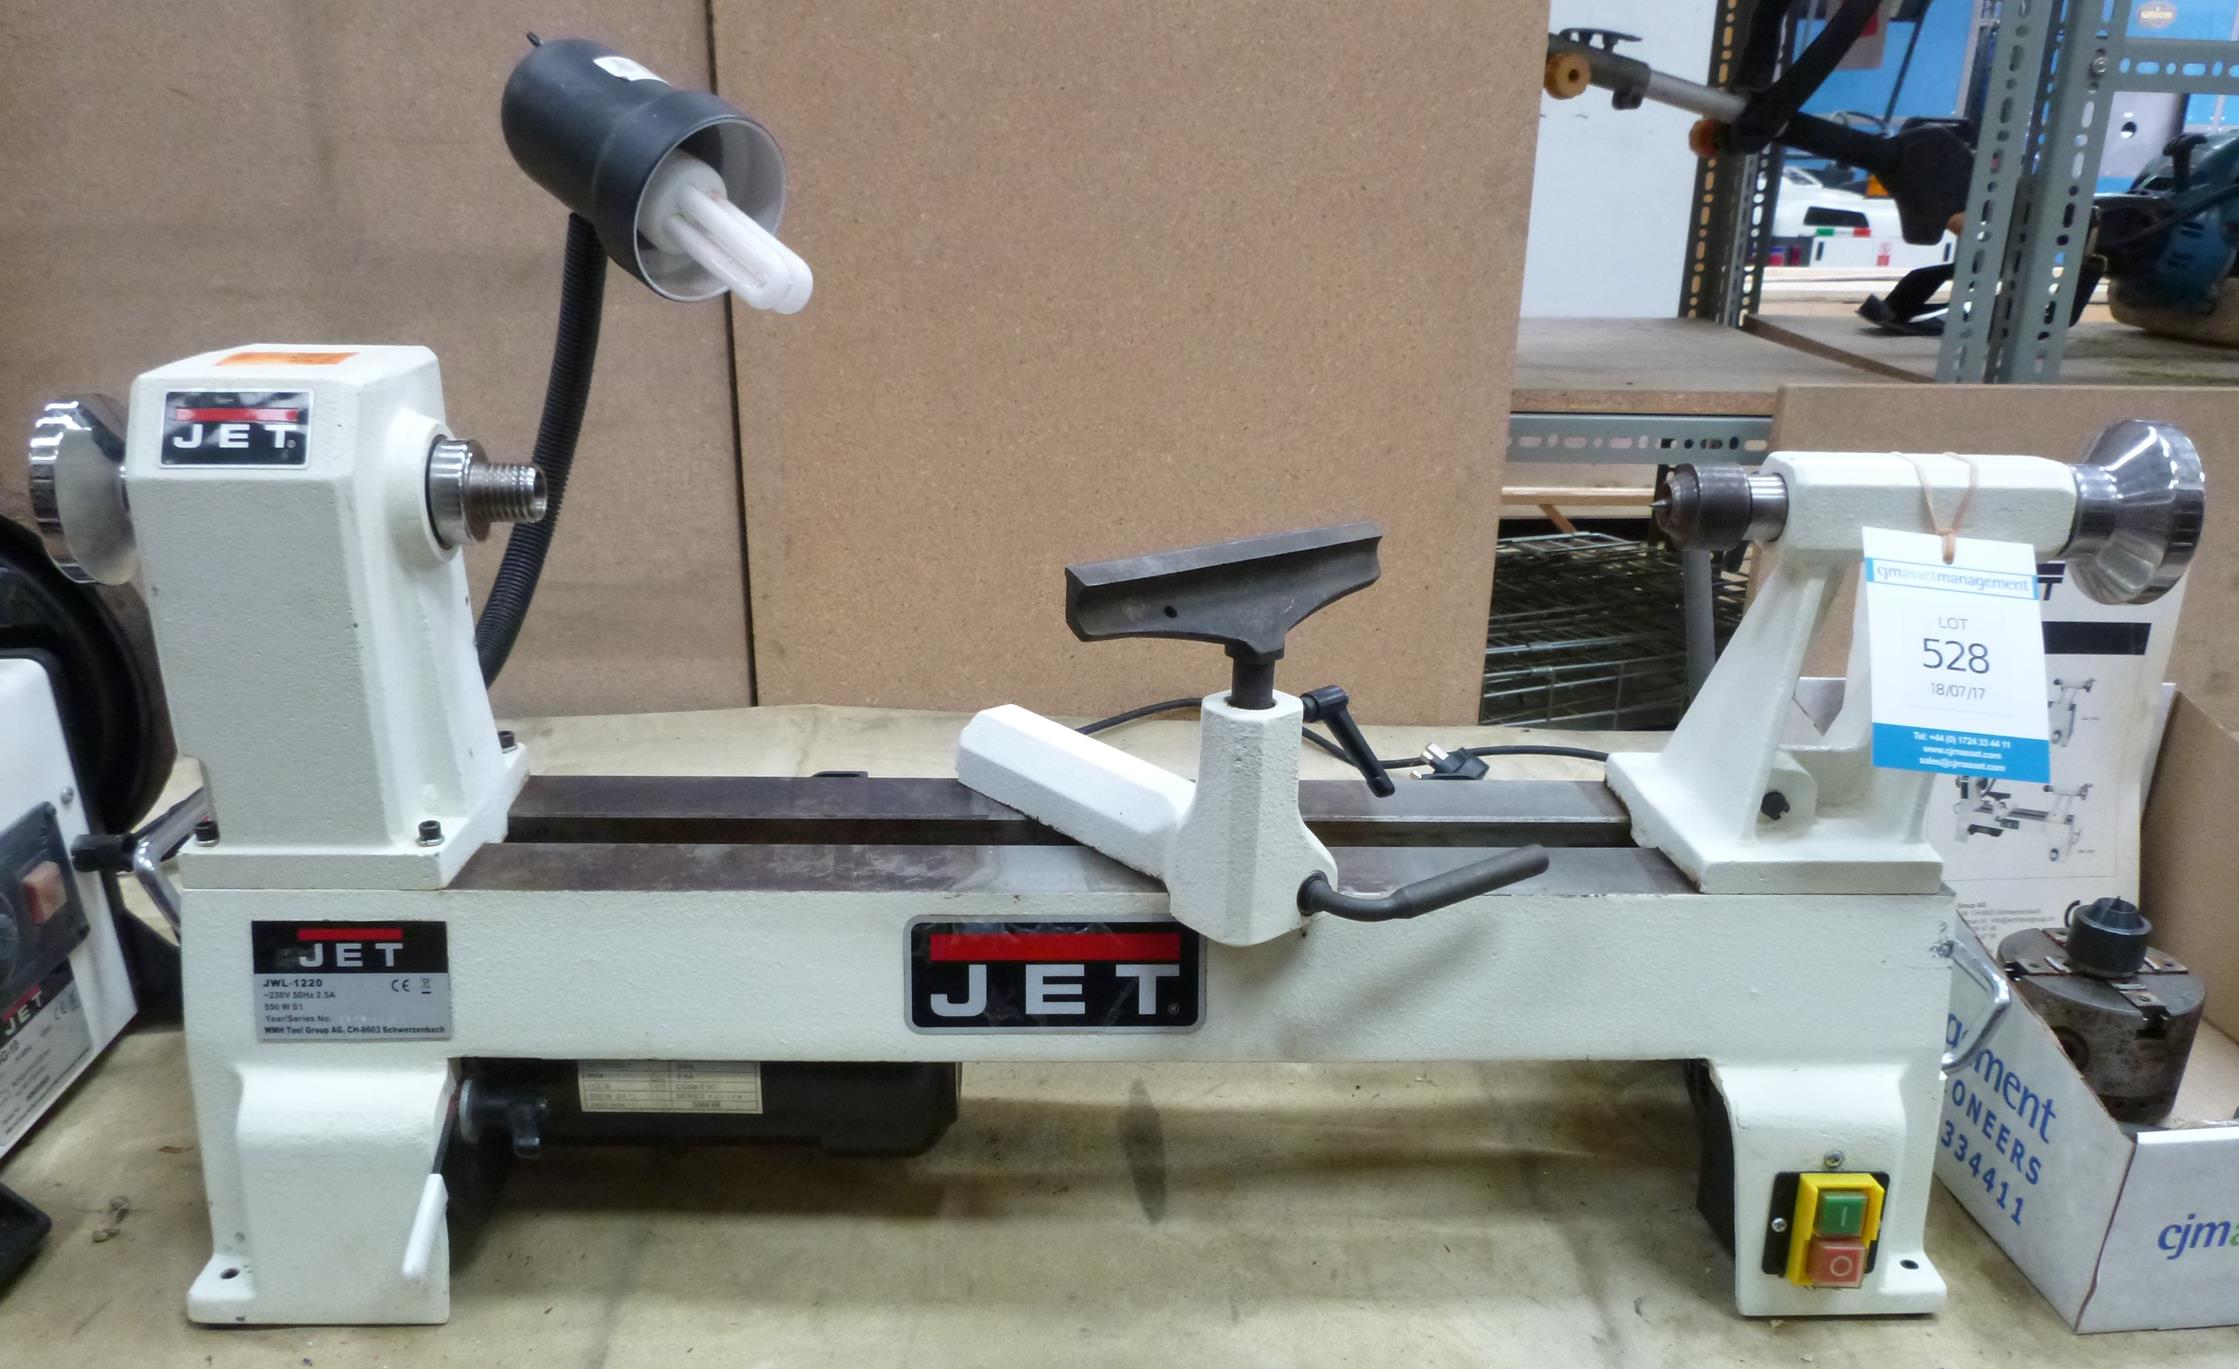 Jet Jwl 1220 Wood Lathe 240v And Box Of Tooling